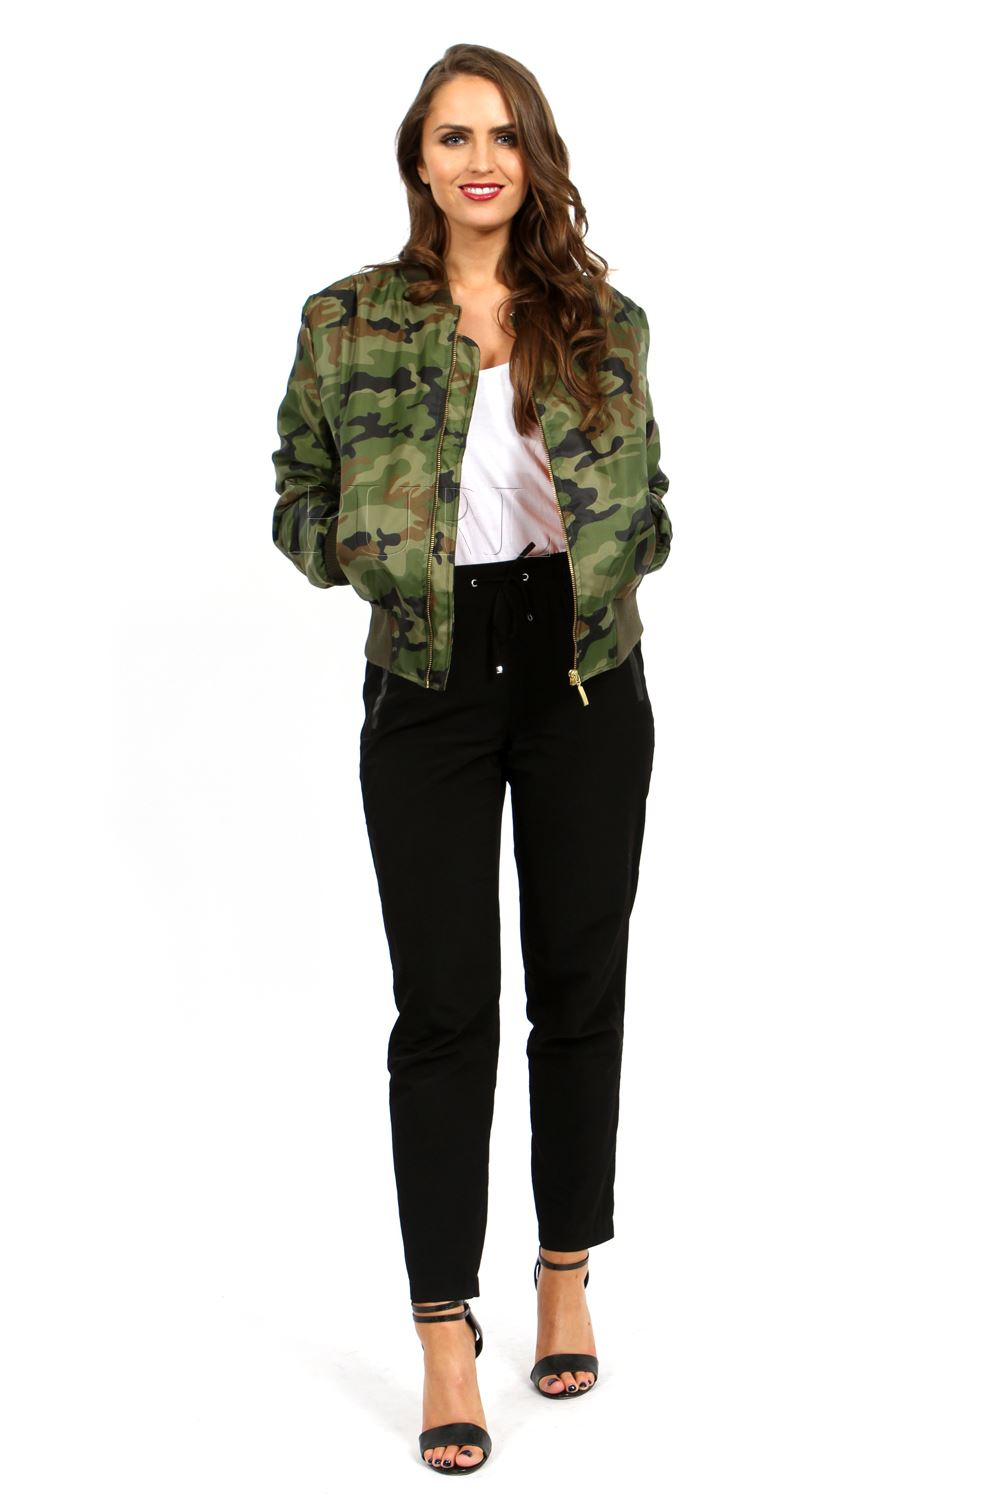 Find the best selection of cheap bomber jacket women in bulk here at tennesseemyblogw0.cf Including denim jackets women warm and polar fleece jacket women at wholesale prices from bomber jacket women manufacturers. Source discount and high quality products in .